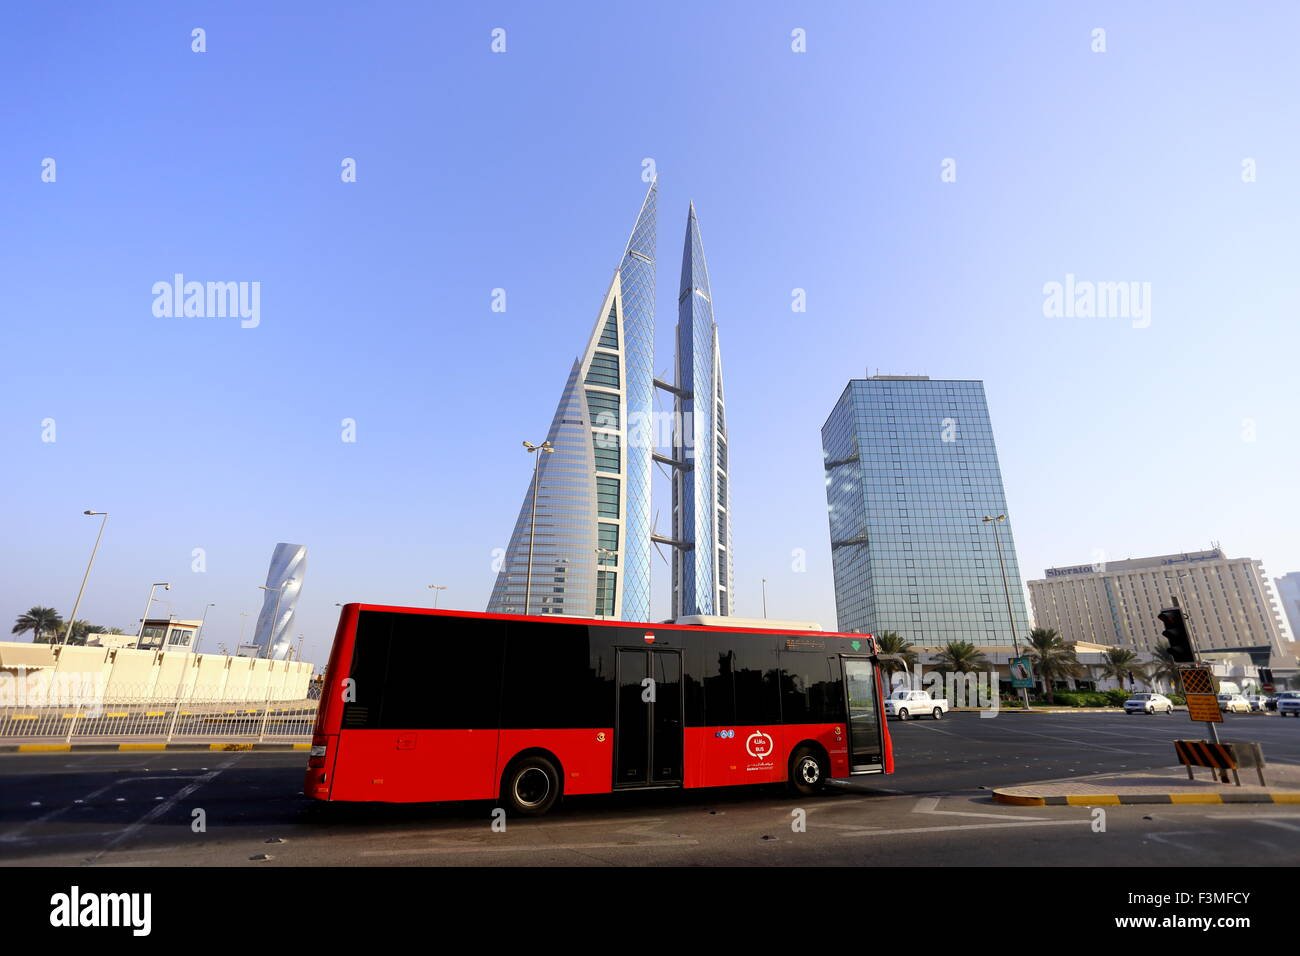 World Trade Centre, with one of the new buses in the foreground, Manama, Kingdom of Bahrain - Stock Image